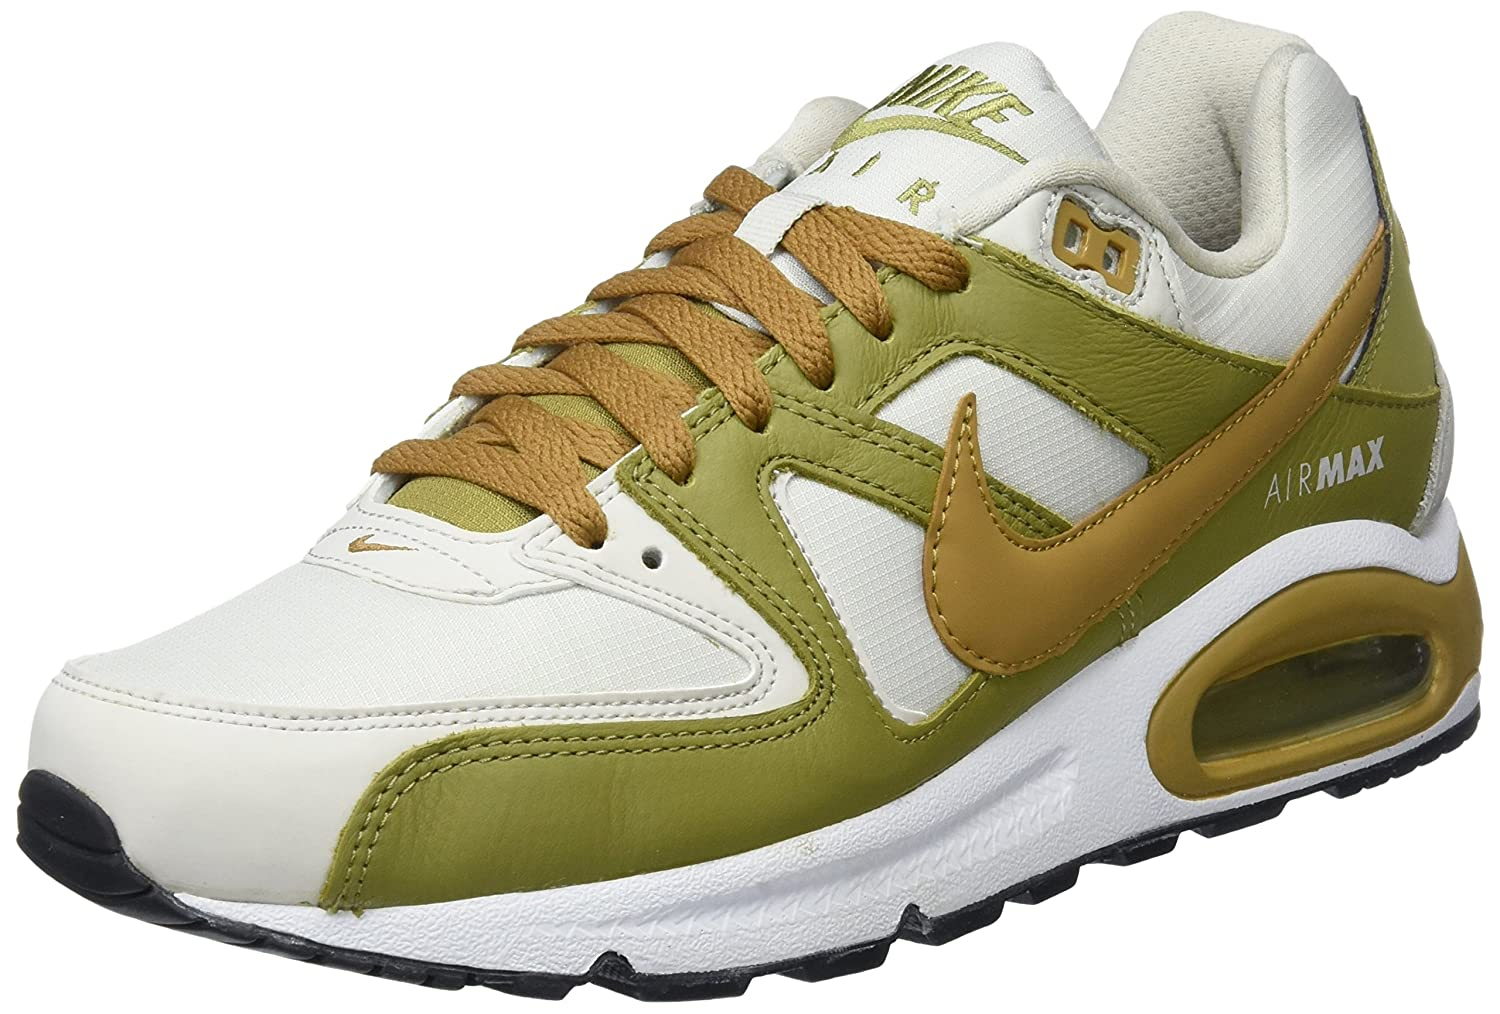 Nike Nike Air MAX Command - Zapatillas de Deporte Hombre 39 EU|Gris (Light Bone/Muted Bronze/Camper 035)